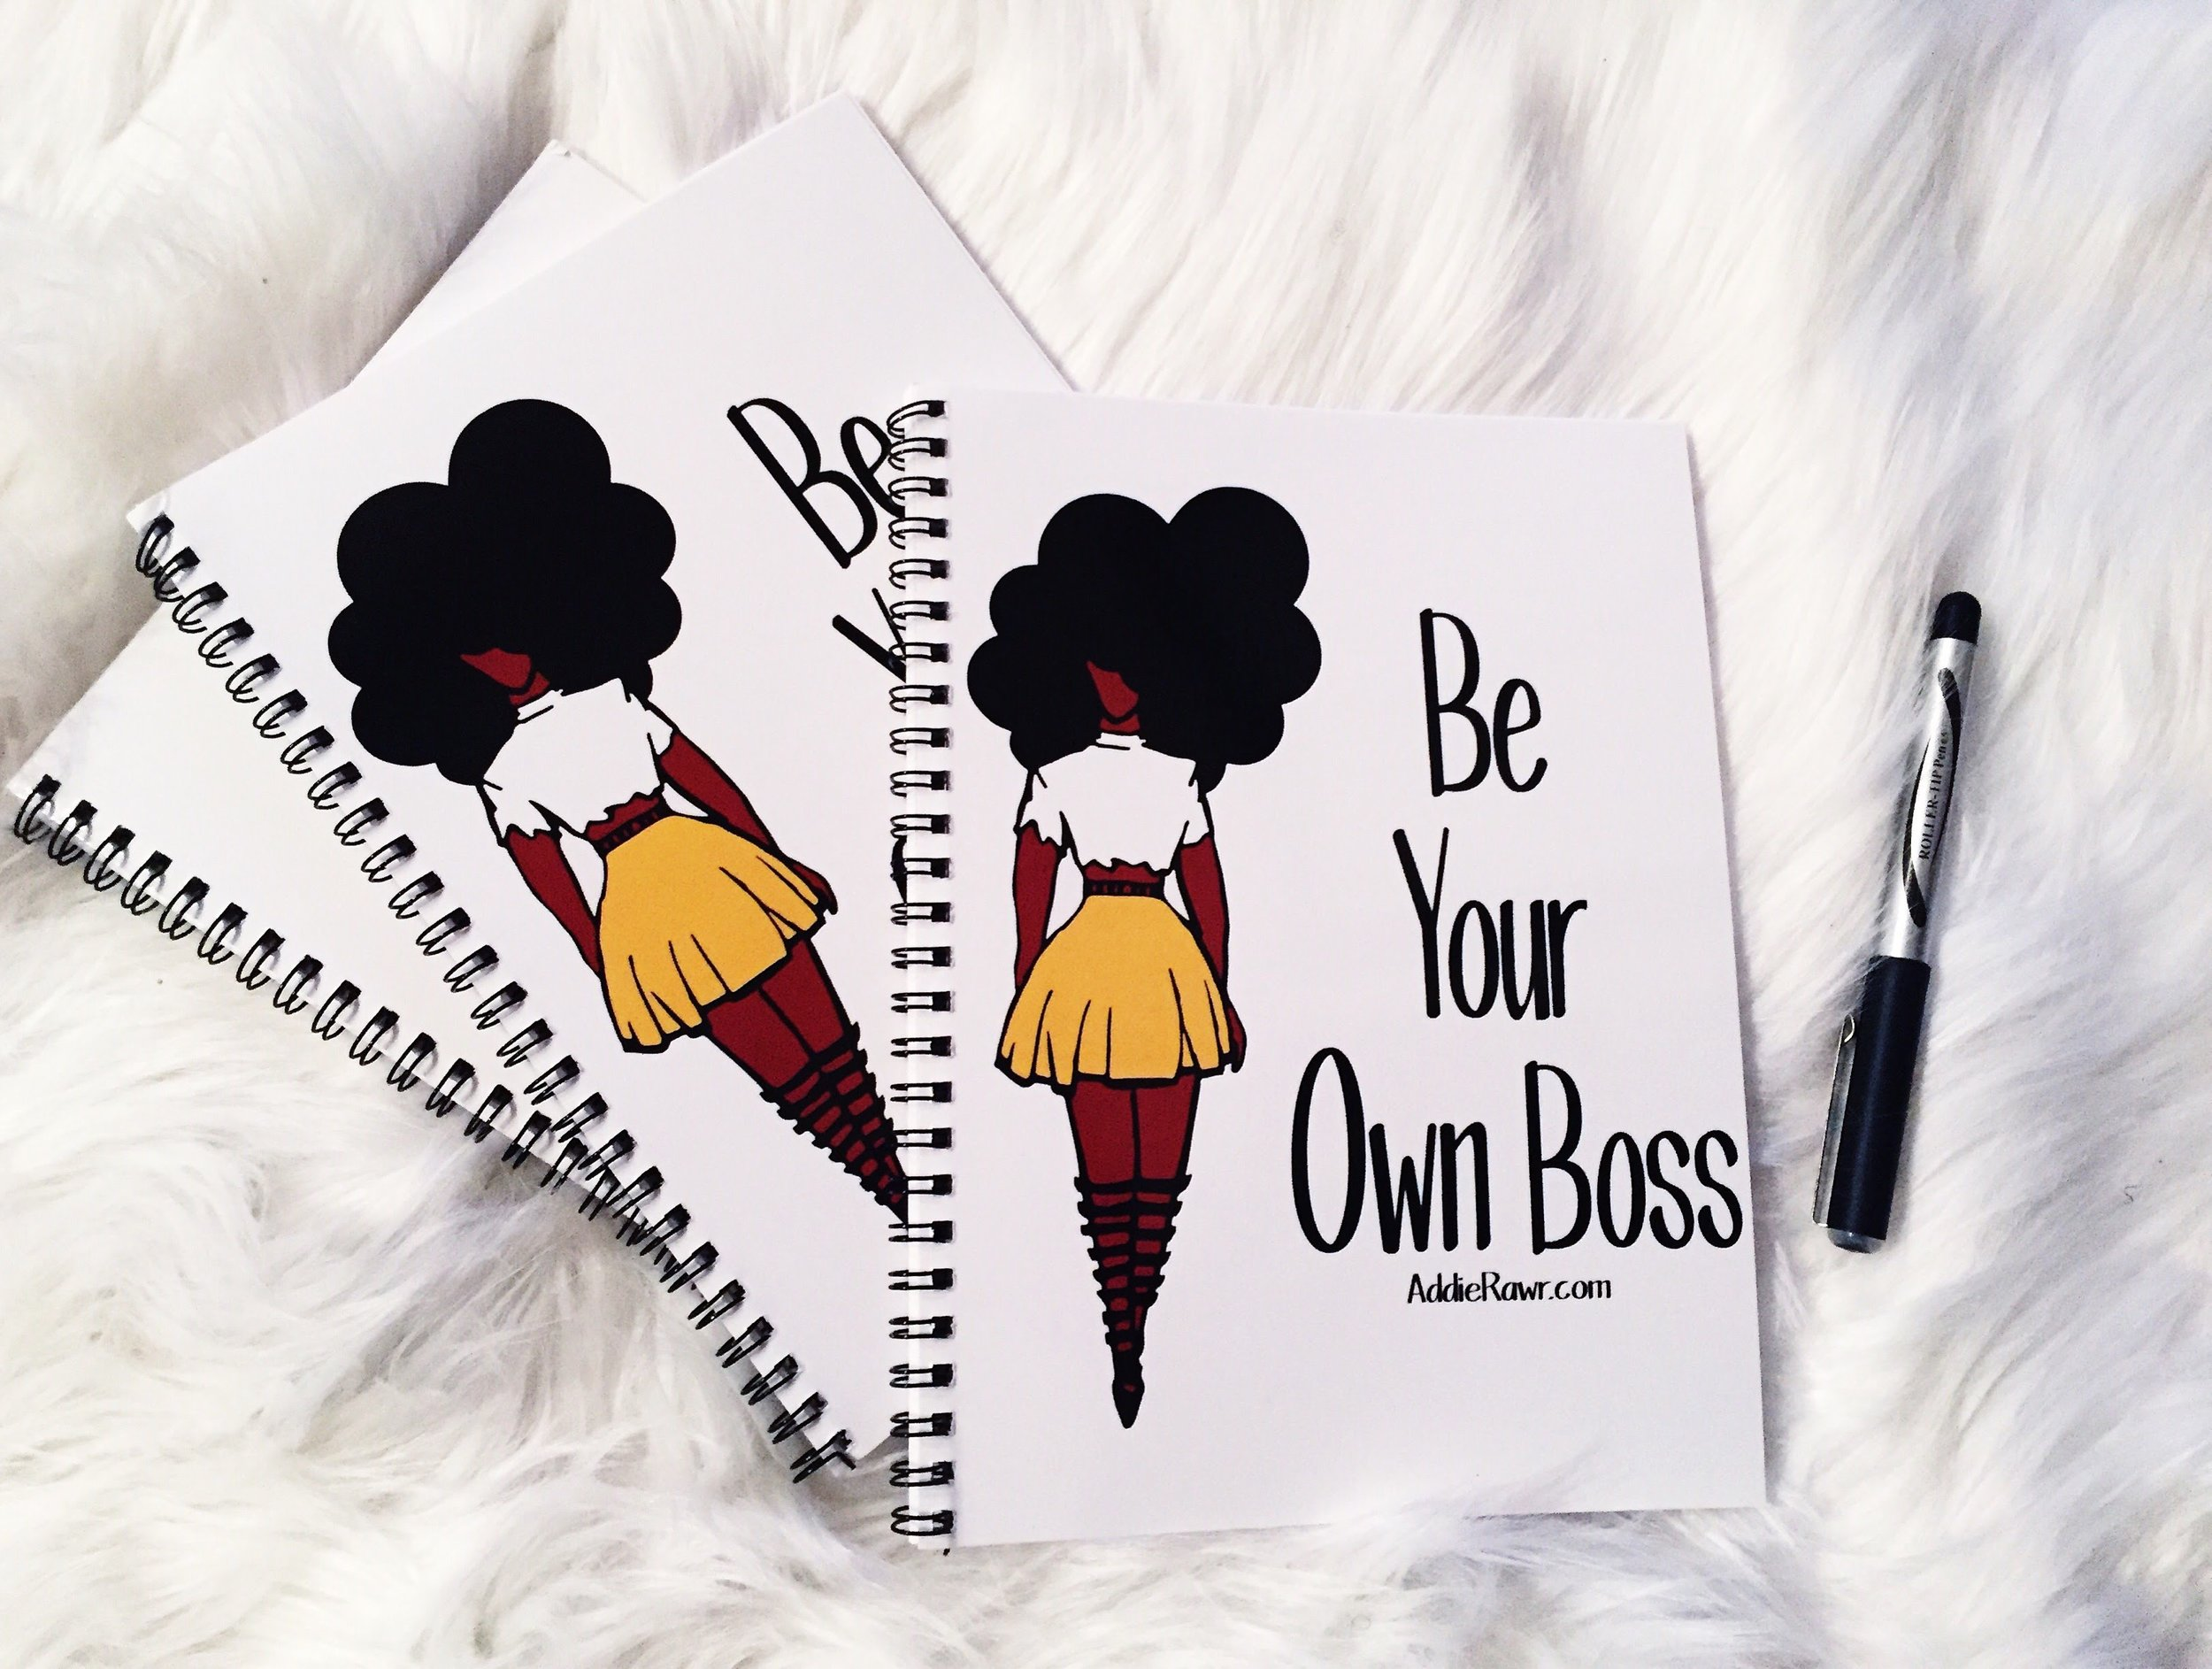 Be Your Own Boss and get control of your business .. shop notebooks  here!